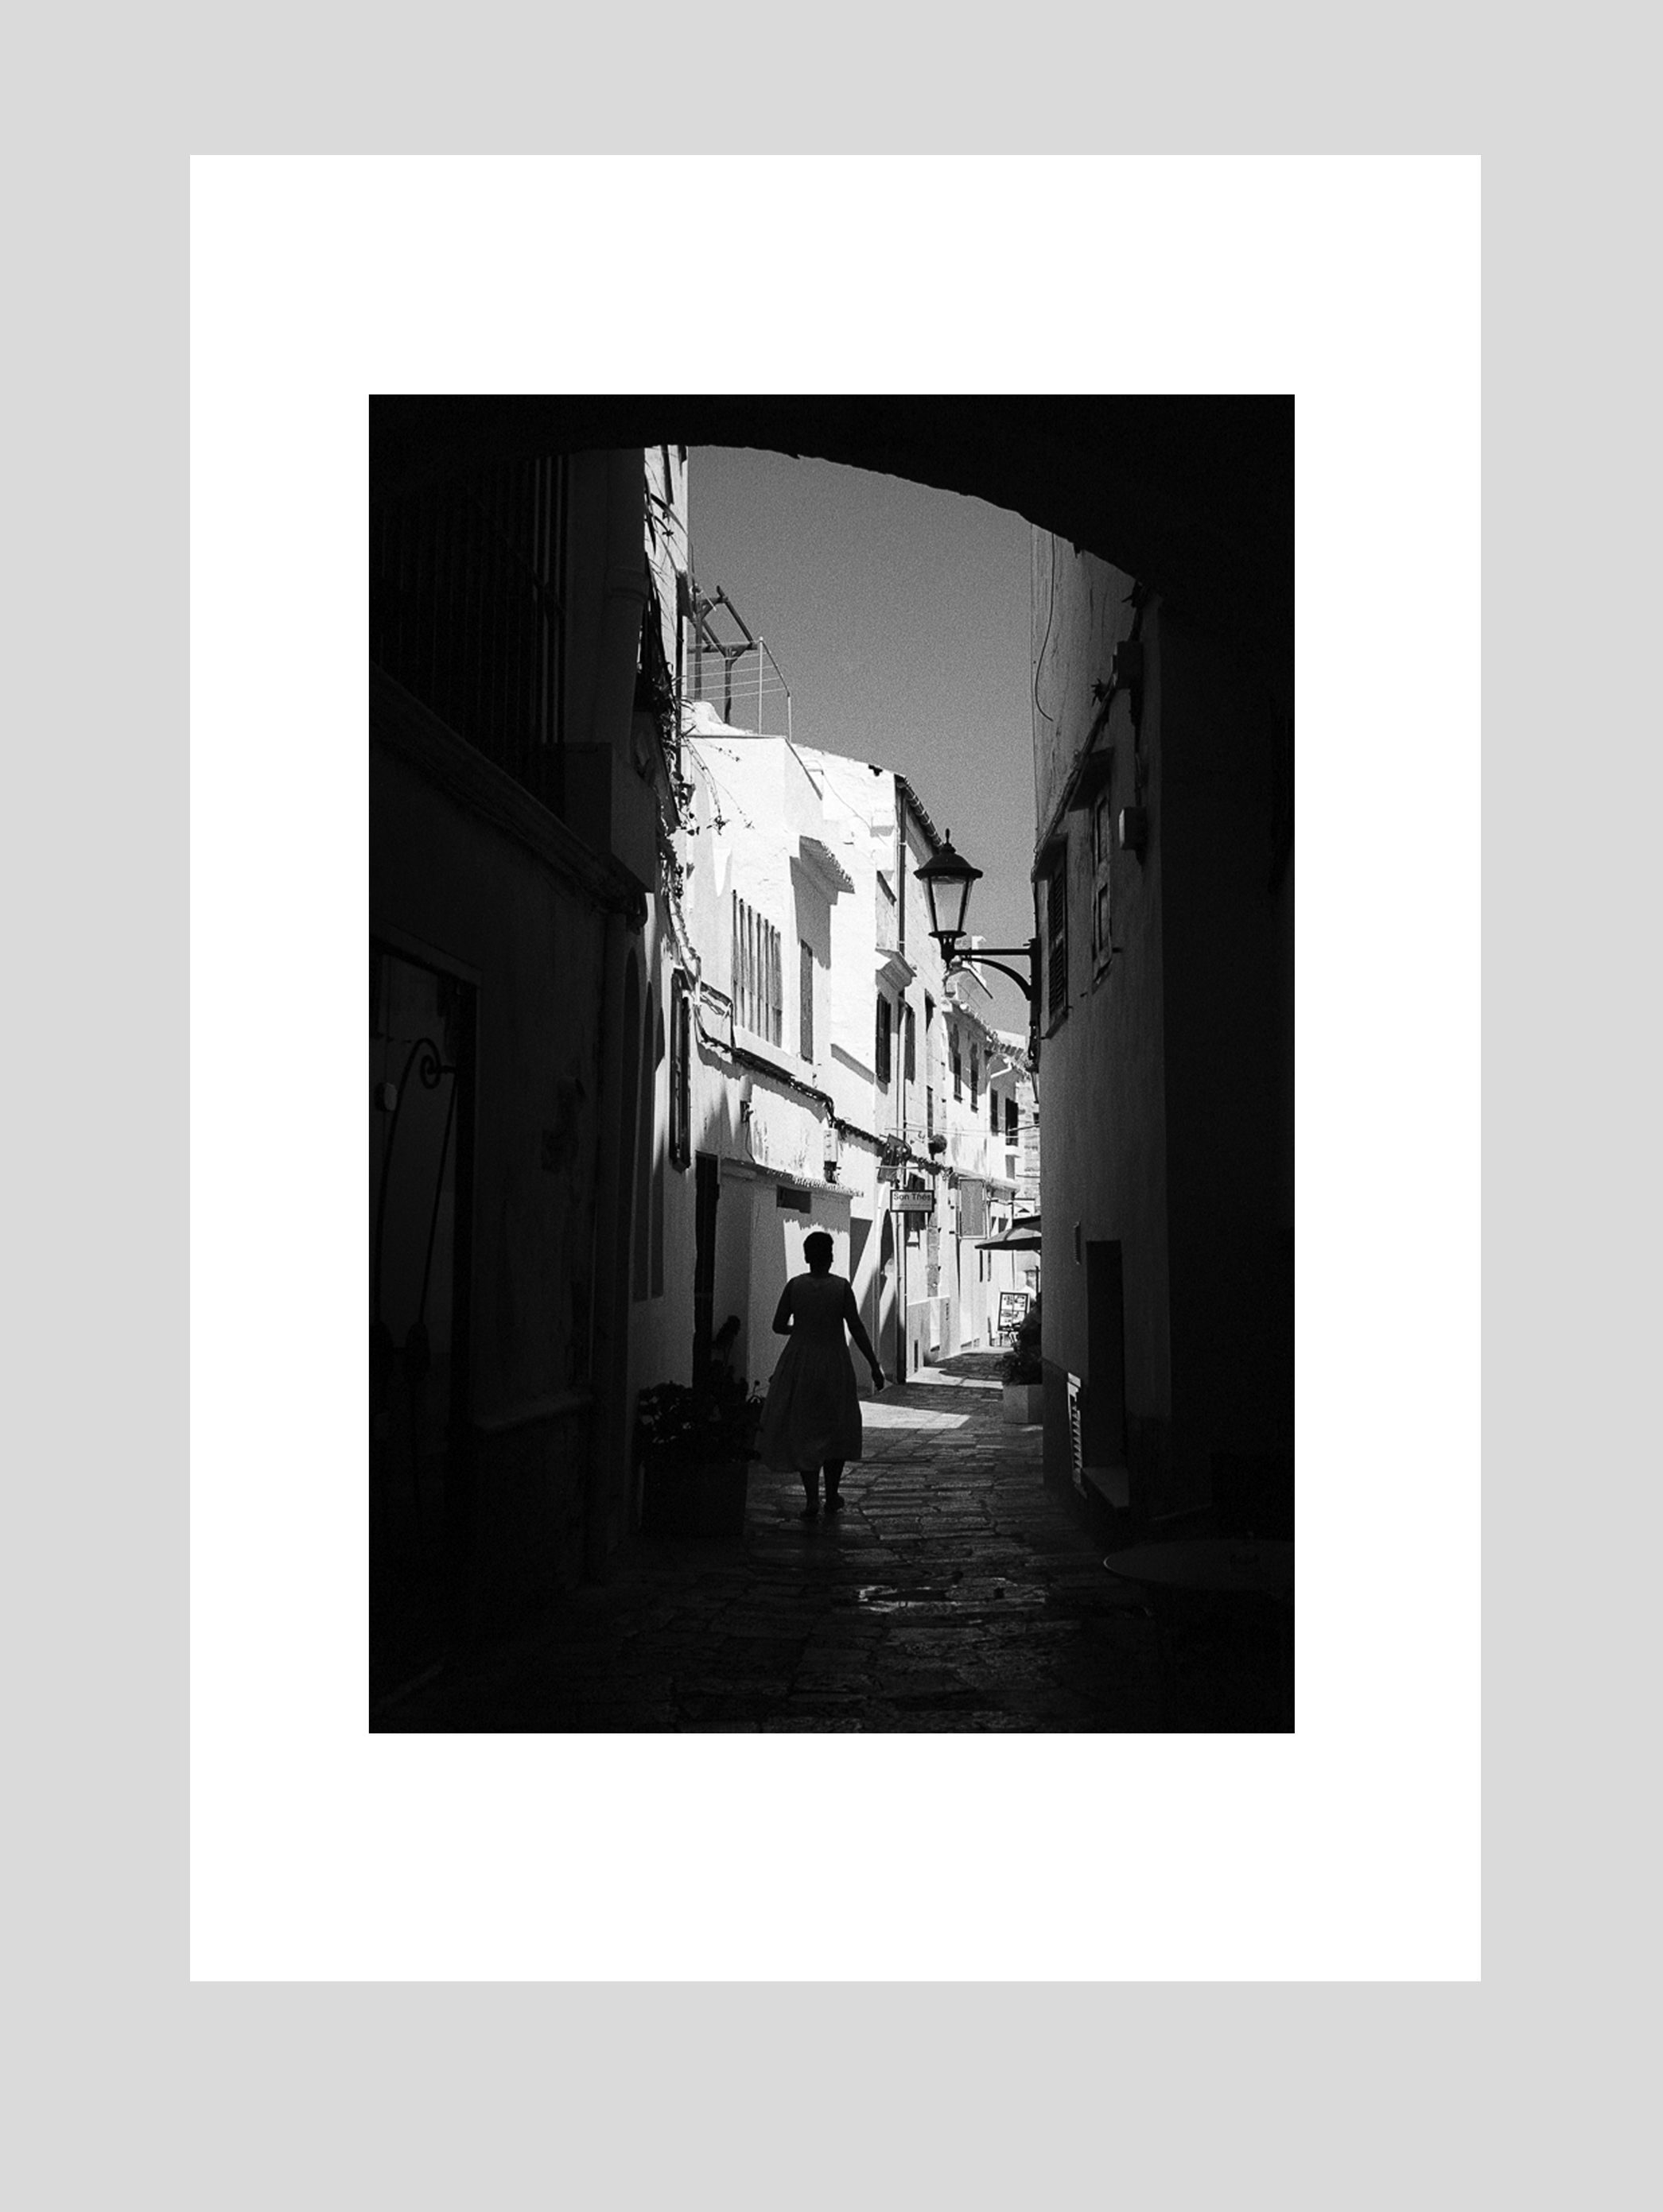 Alleyway, Menorca - A4 print on Canson Baryta Photographique paper